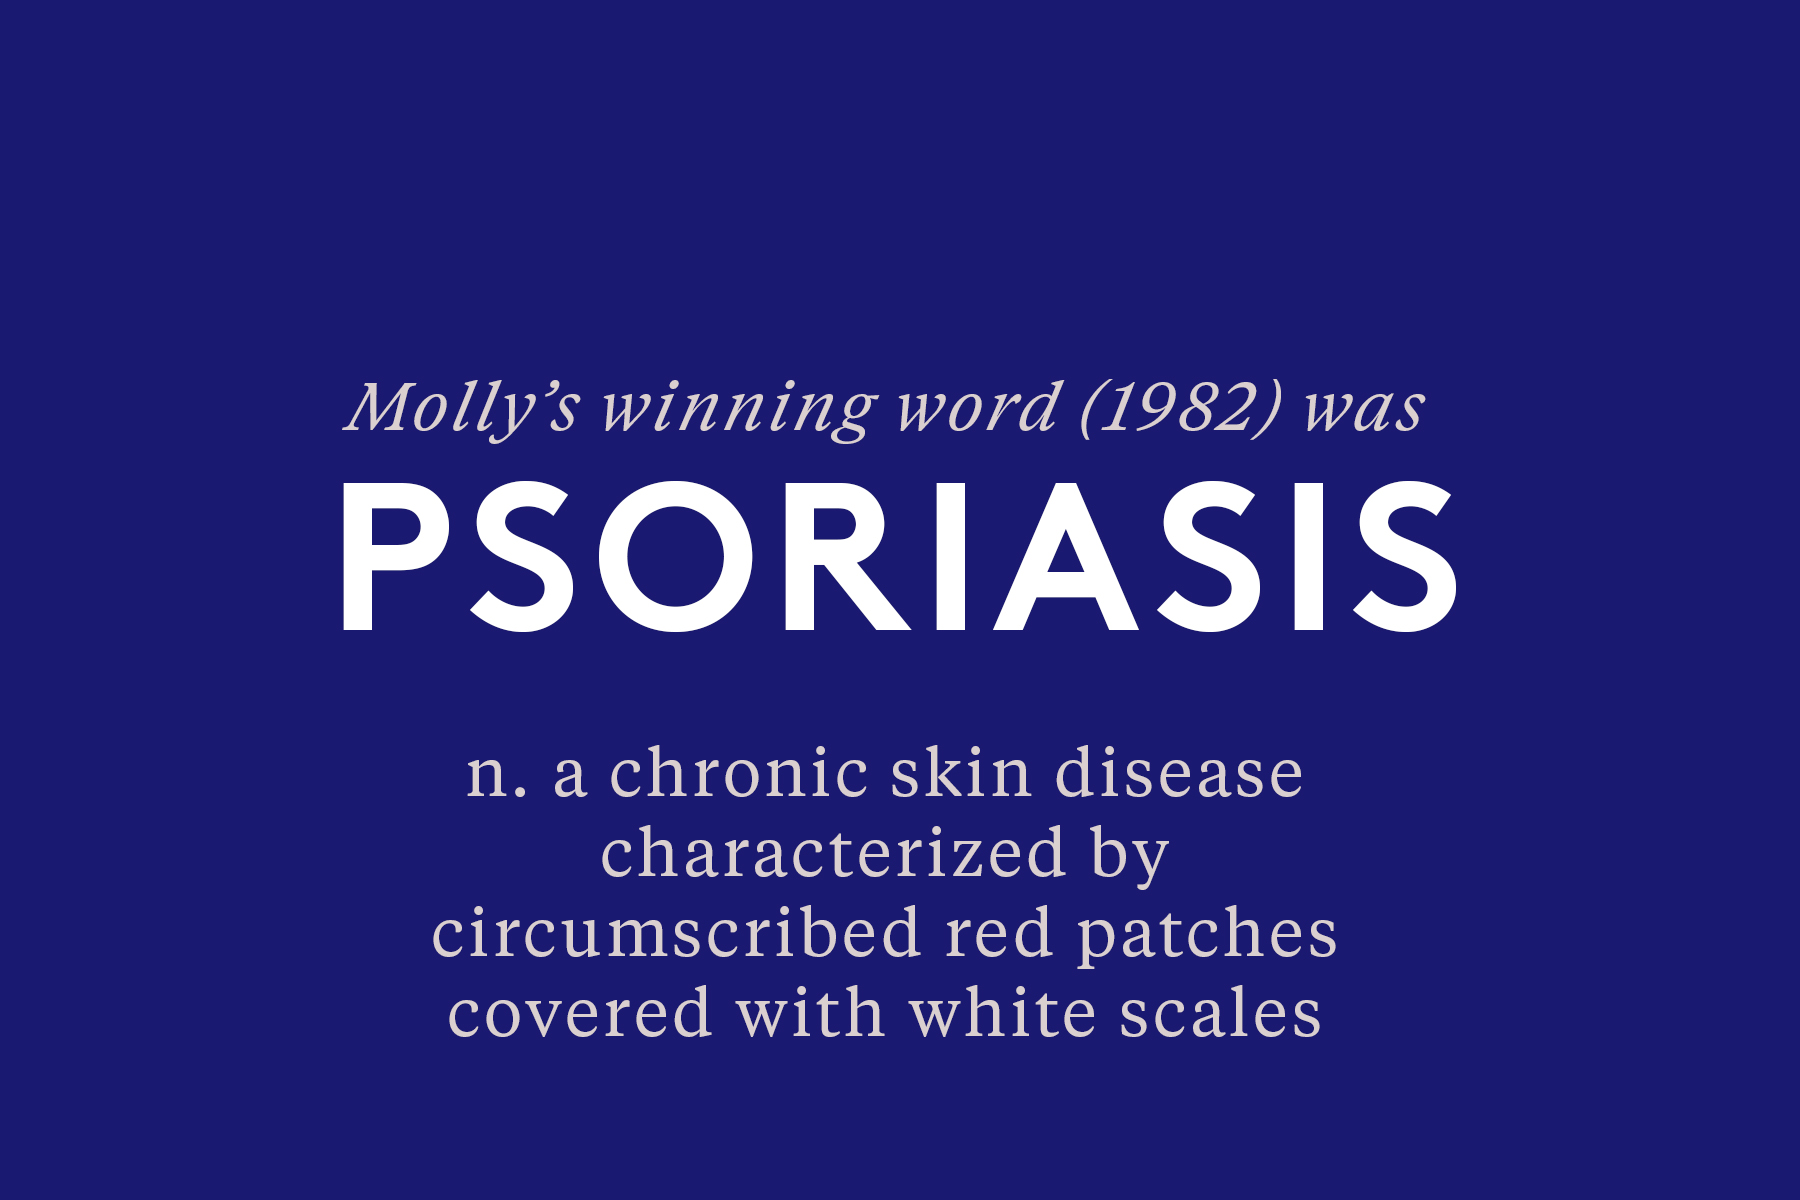 Molly's winning word was Psoriasis